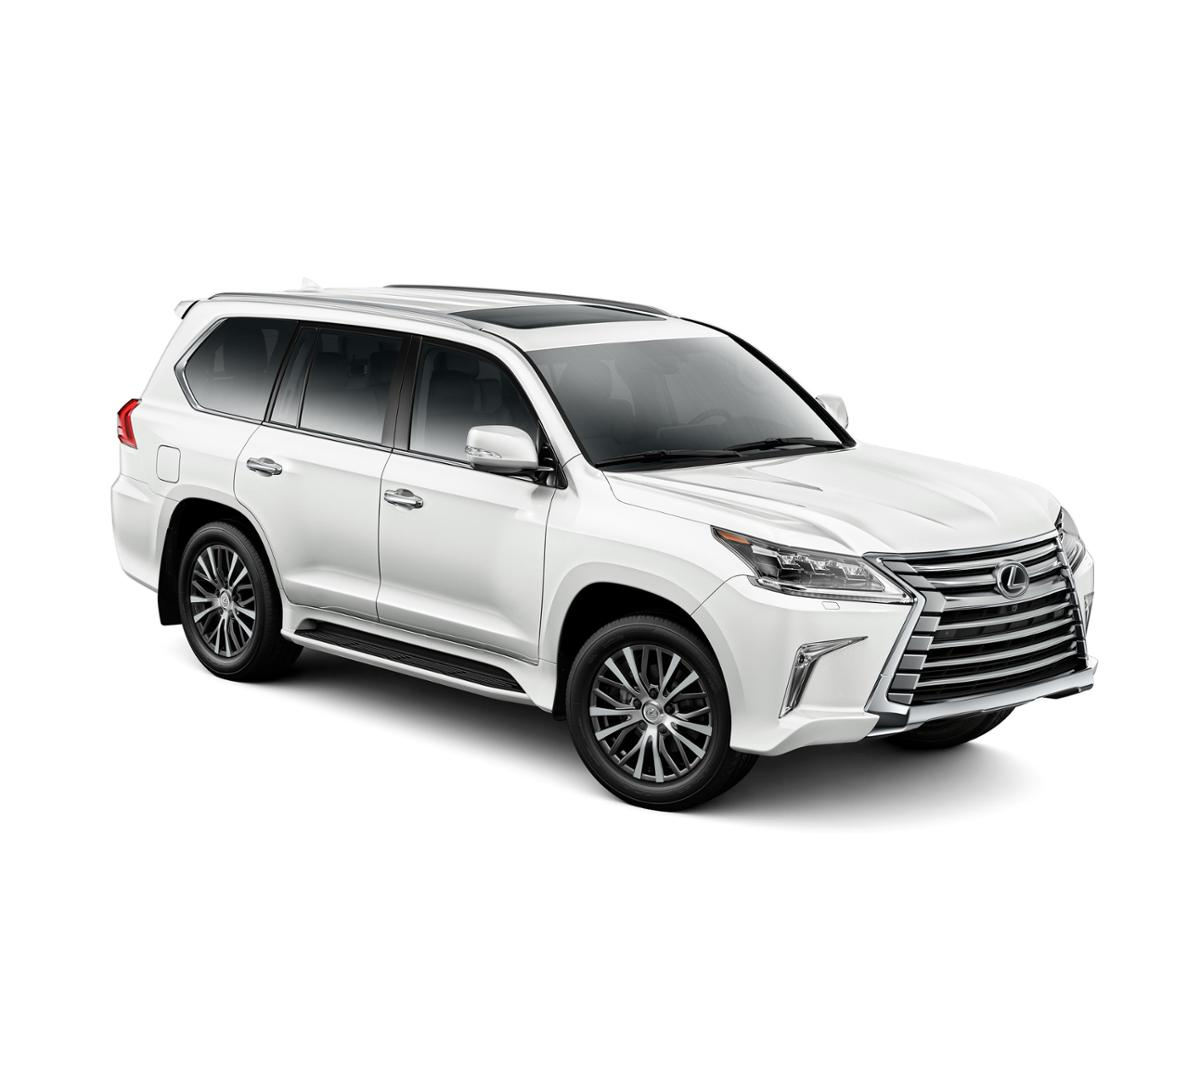 2019 Lexus LX 570 Vehicle Photo in Bedford, NH 03110